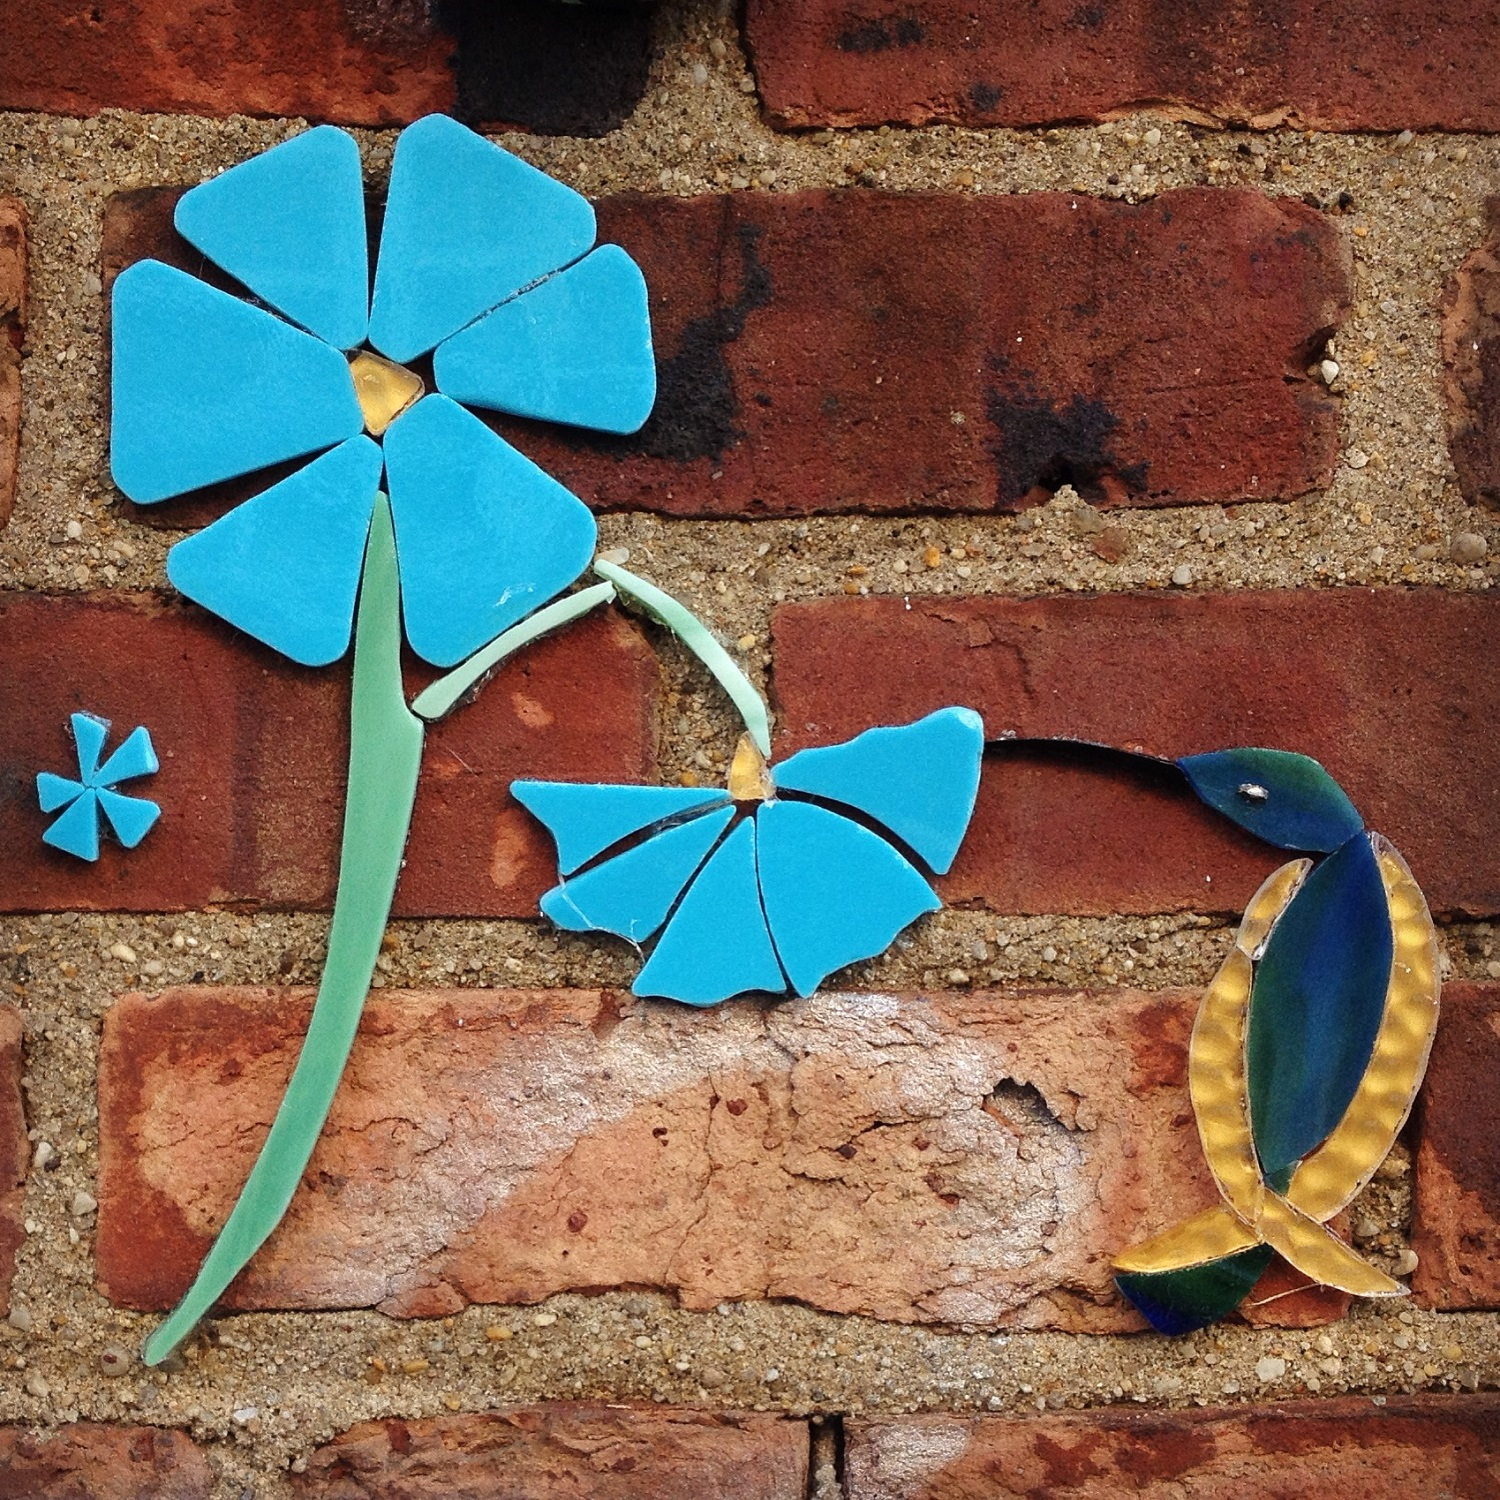 Wing-Glass-Street-art-blue-flowers-hummingbird-detail.jpg